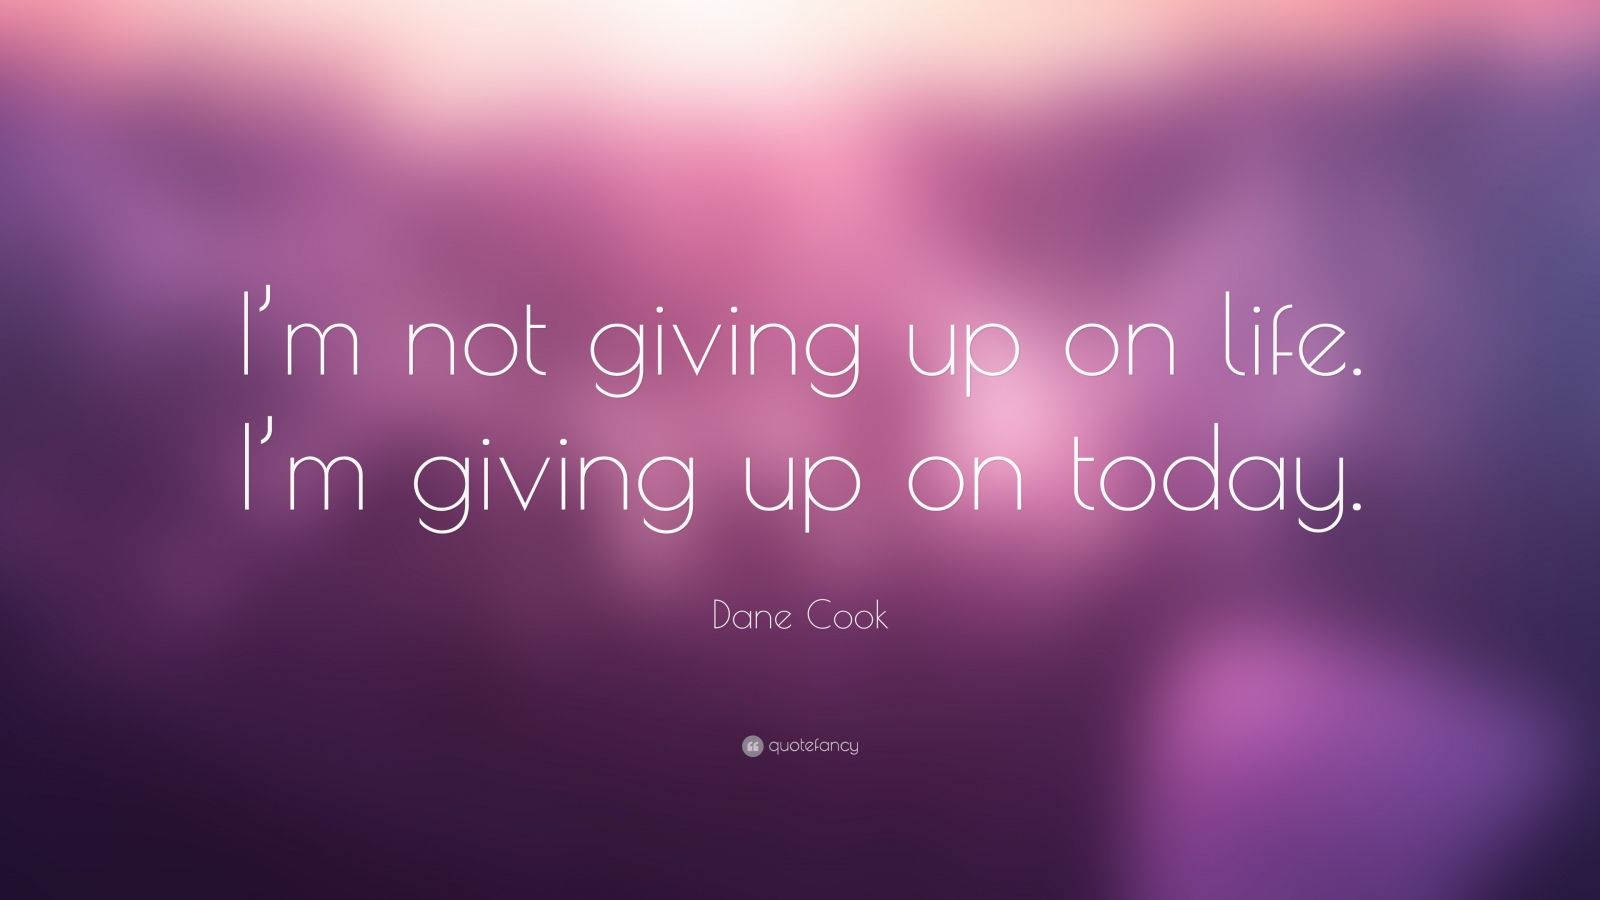 """Dane Cook Quote: """"I'm not giving up on life. I'm giving up on today."""""""